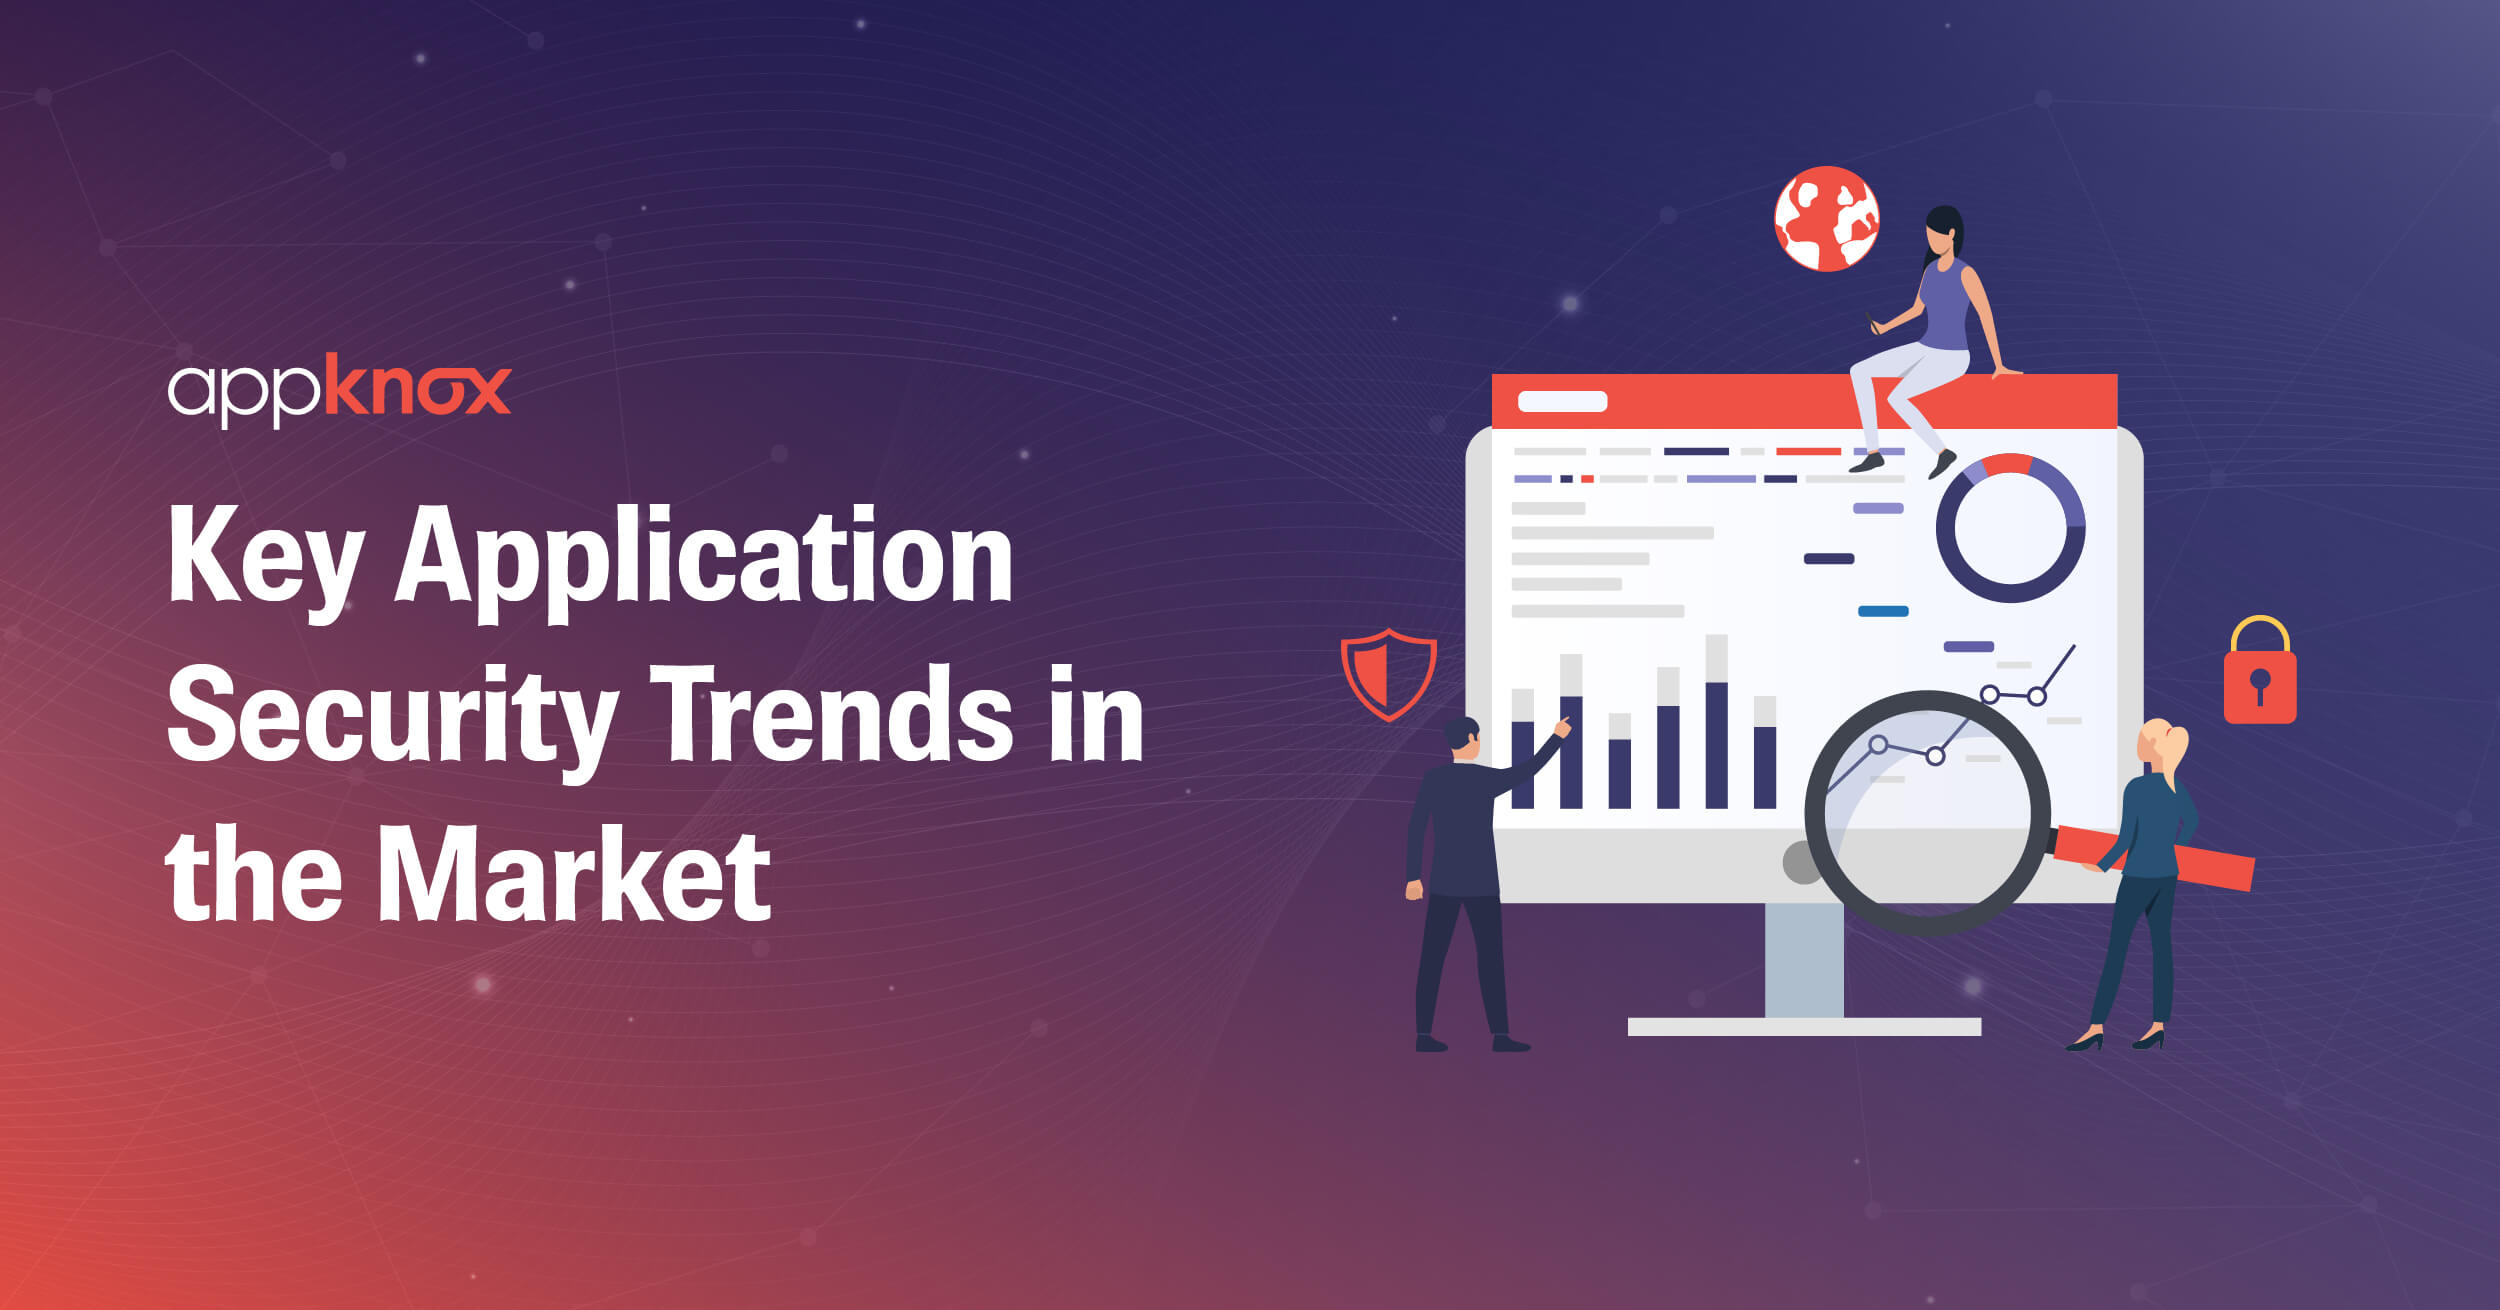 Key Application Security Trends in the Market